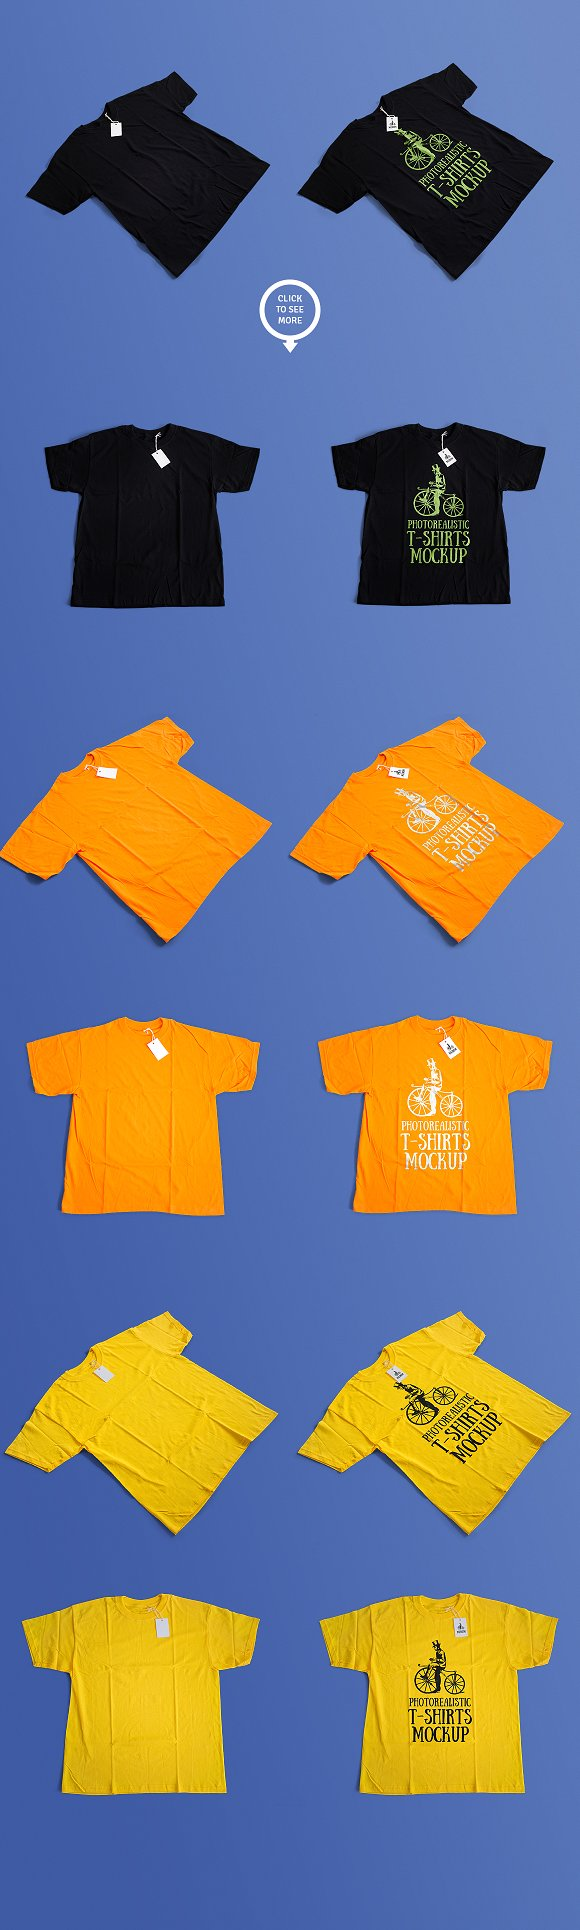 Download T Shirt Mockup After Effects Free Download Free And Premium Quality T Shirt Mockups PSD Mockup Templates